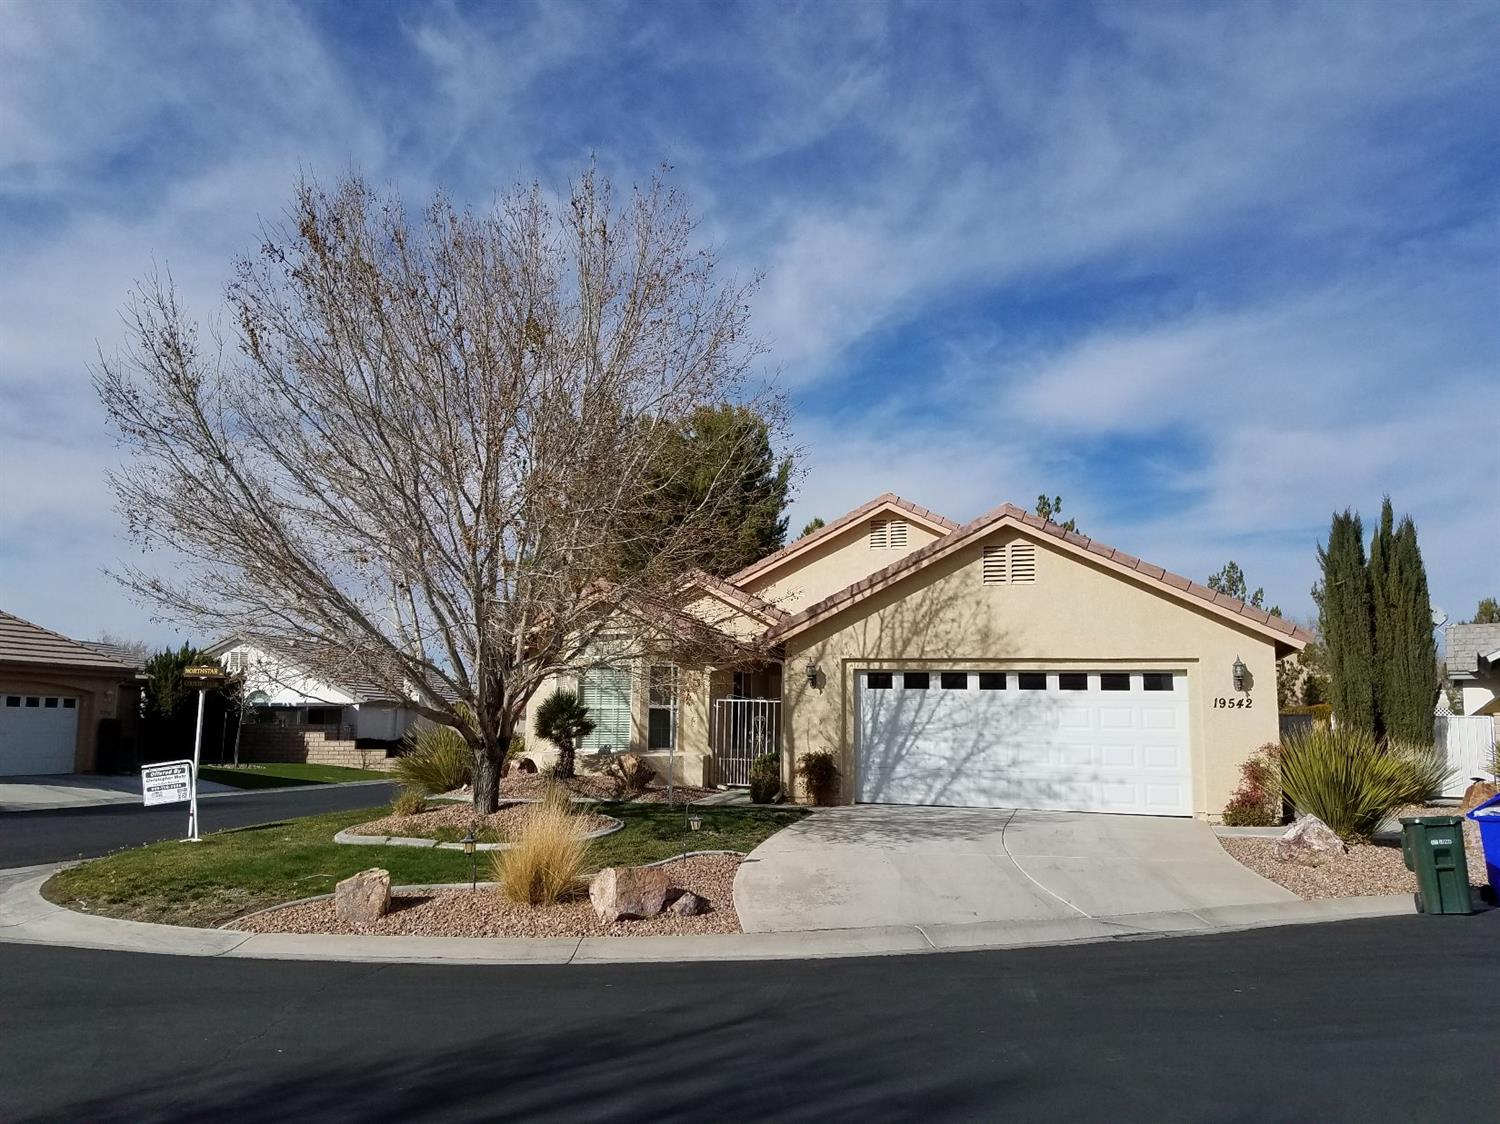 All homes for sale 55places 19542 northstar court apple valley ca 92308 malvernweather Choice Image